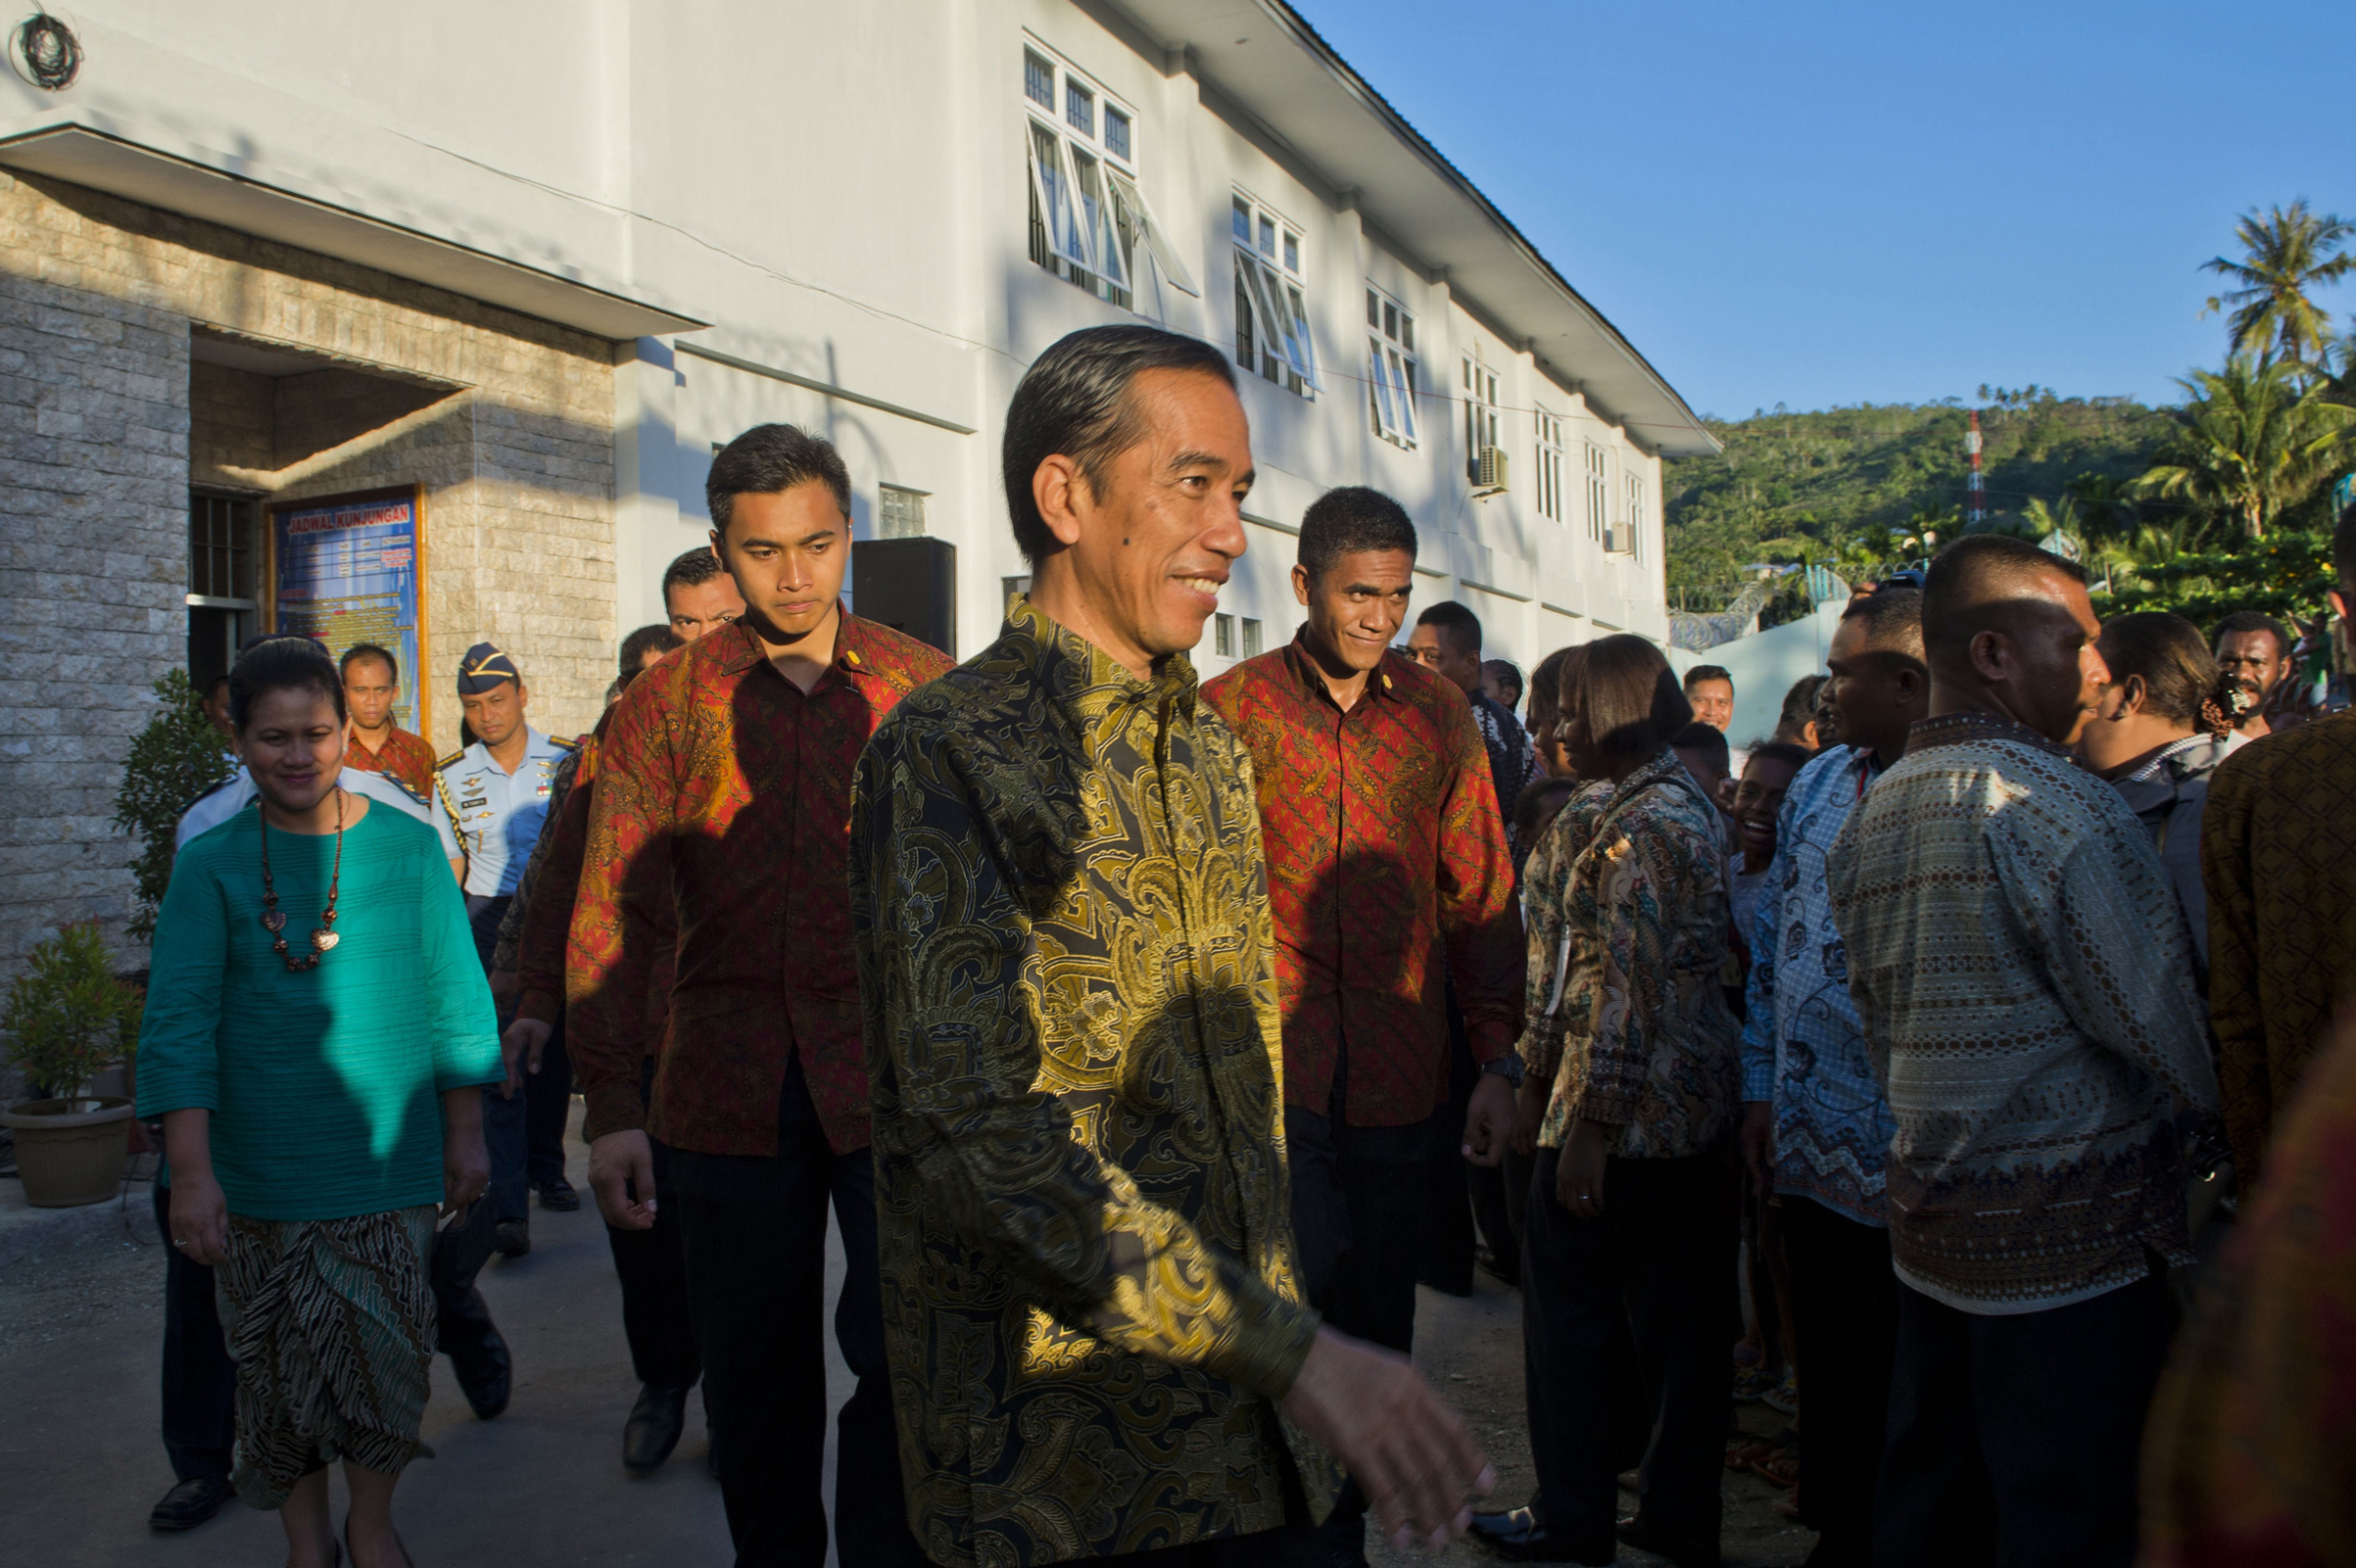 Indonesian President Joko Widodo departs after a ceremony to release political prisoners at Abepura prison located in Jayapura, in the eastern province of Papua, on May 9, 2015.